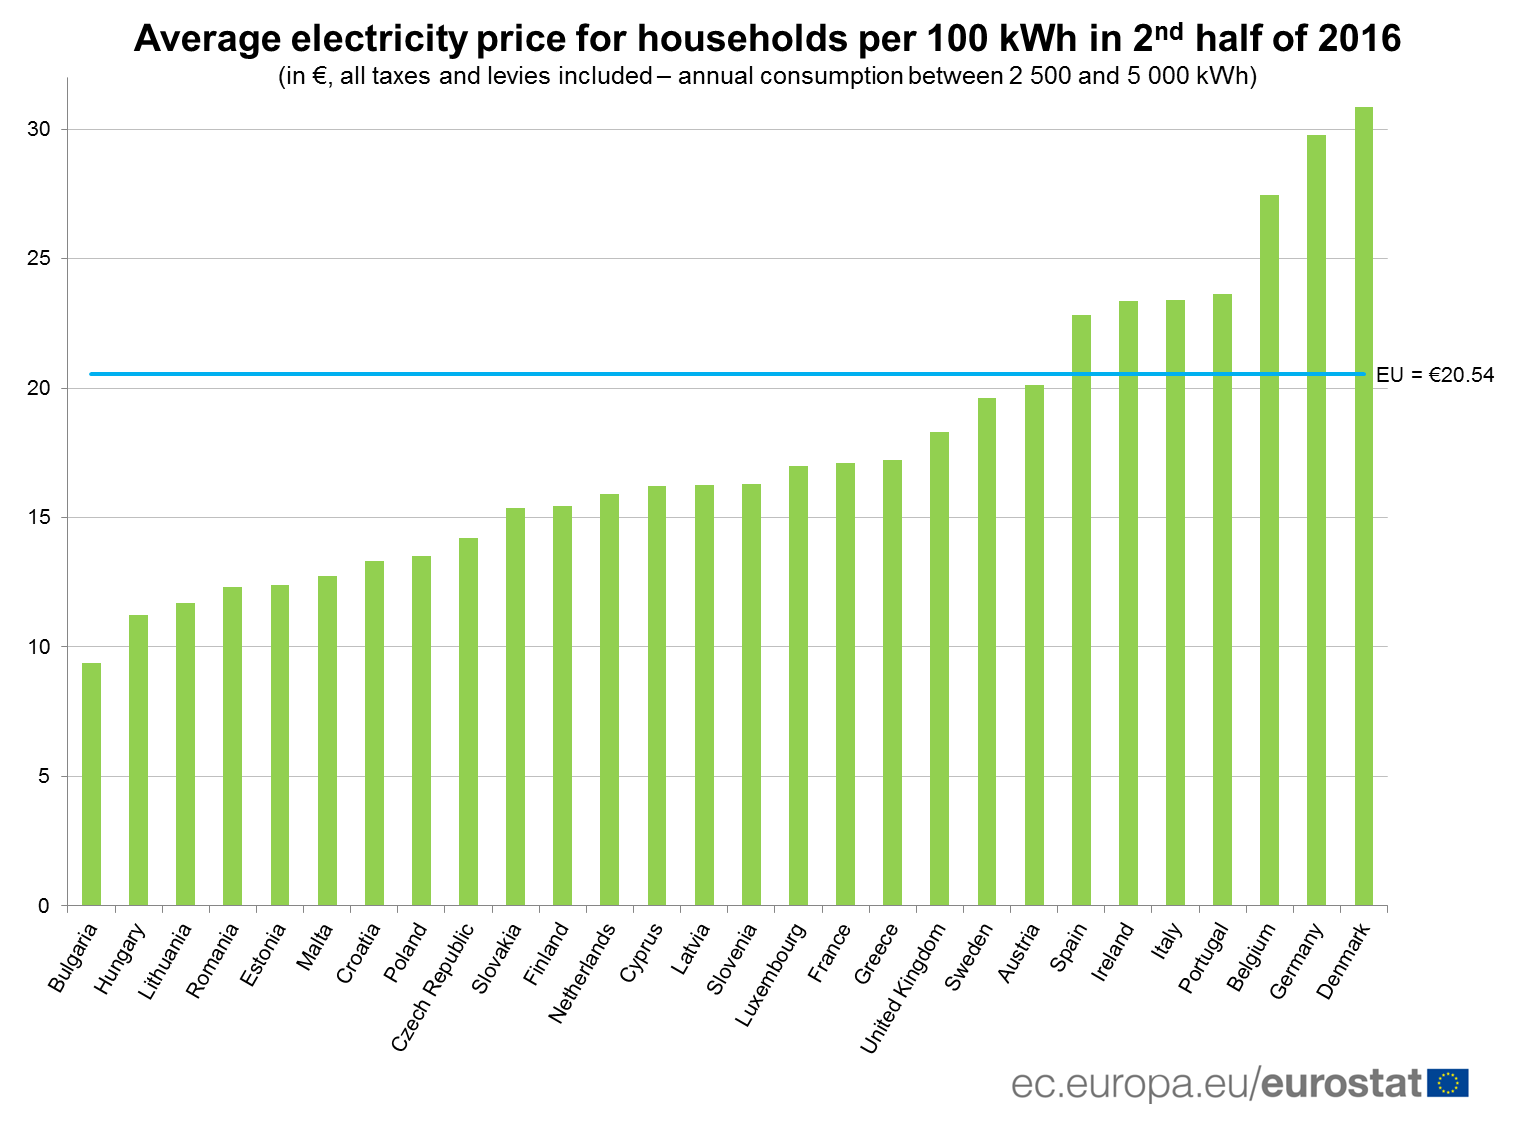 Average electricity price for households per 100 kWh in 2nd half of 2016